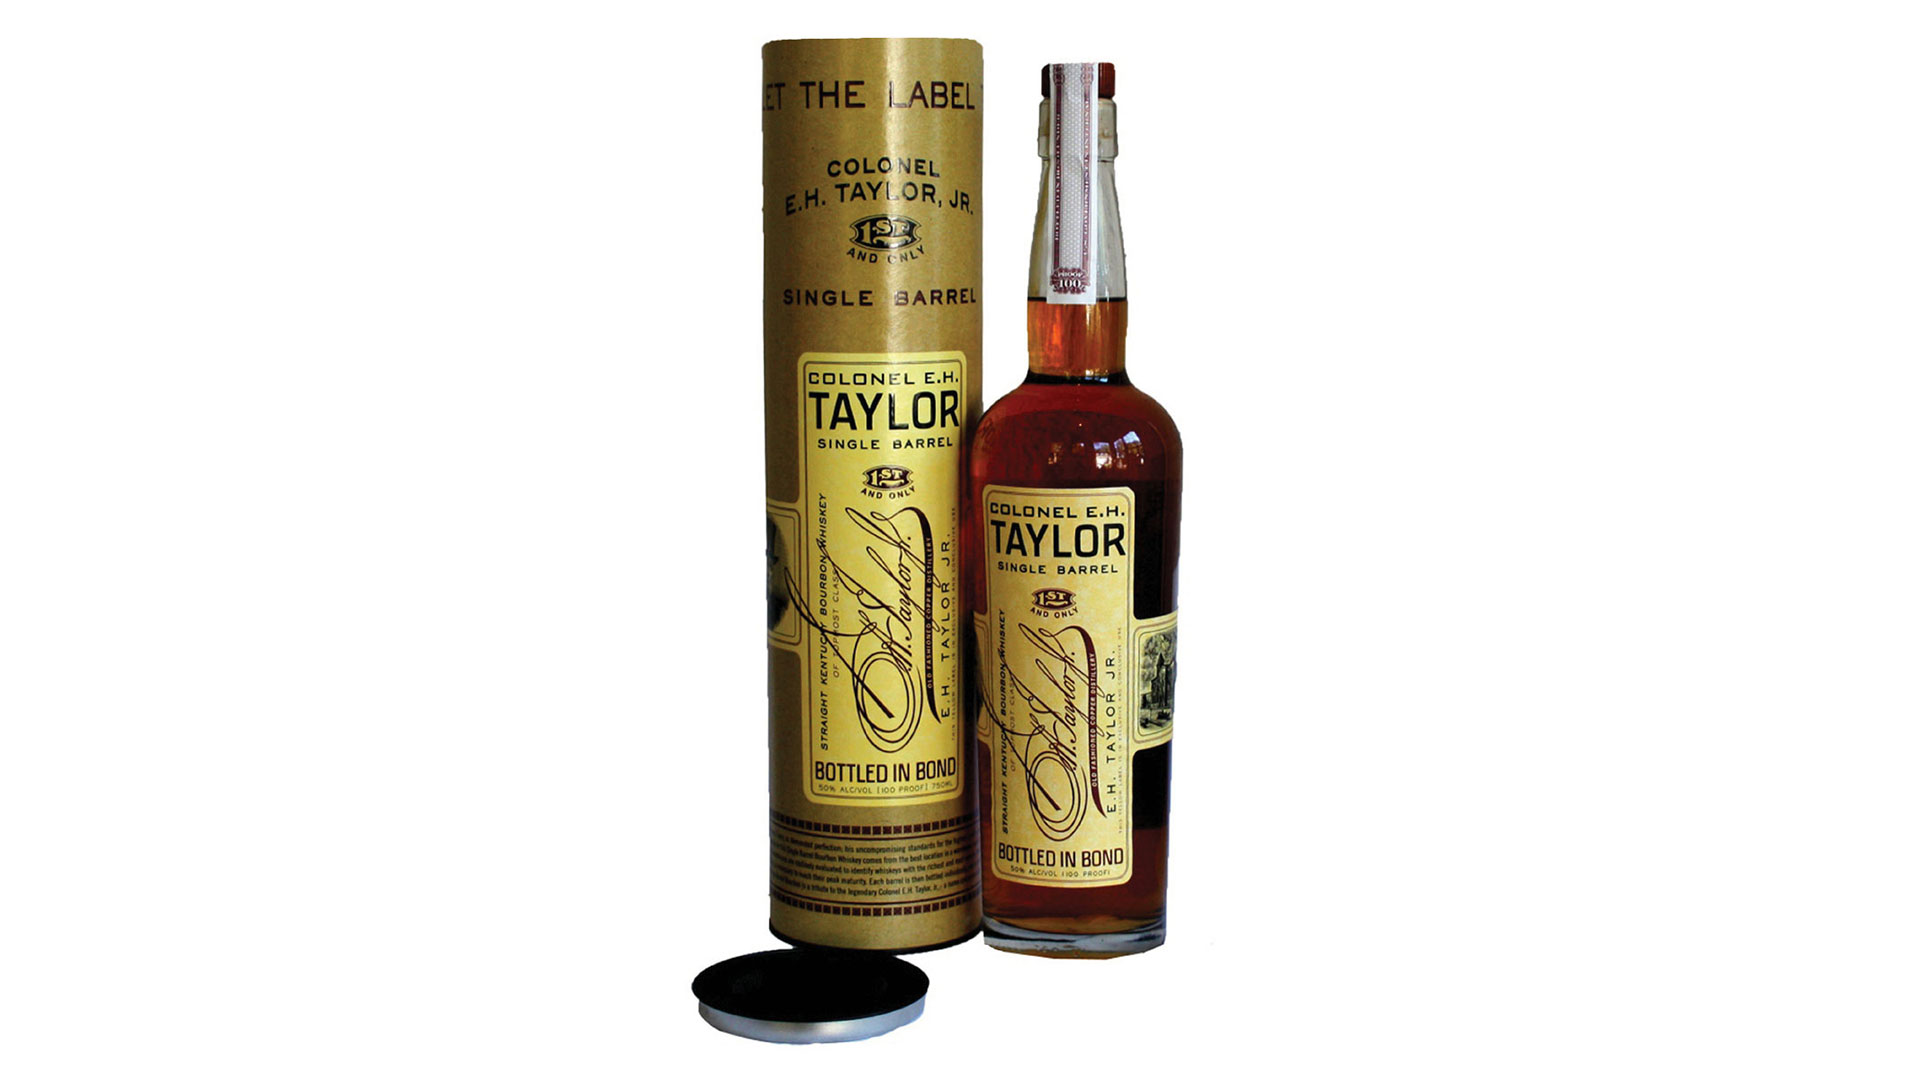 Gift-Worthy: Colonel E.H. Taylor, Jr